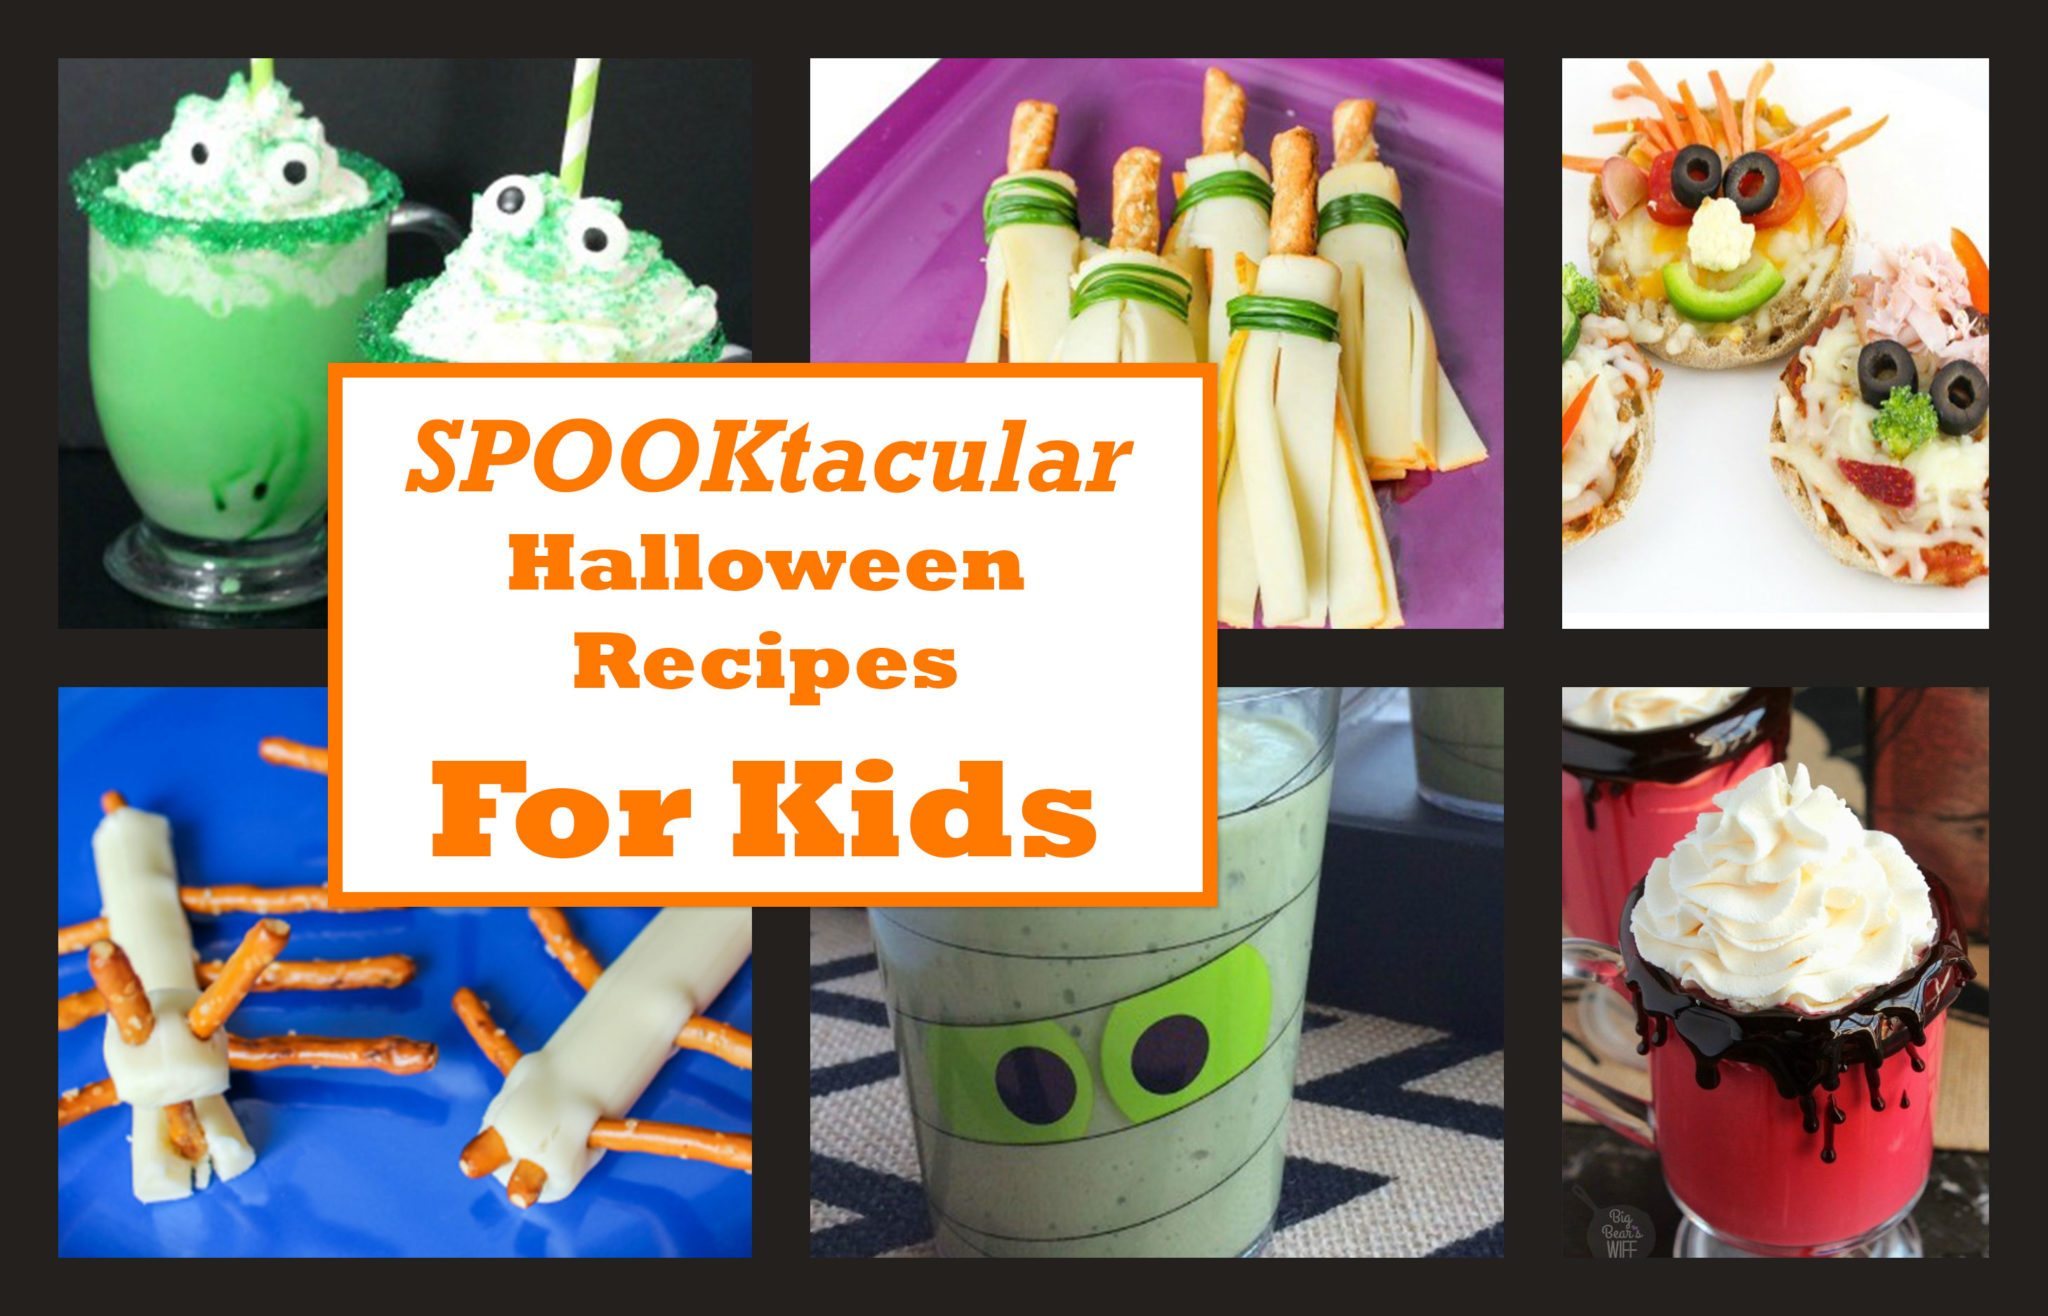 Kid friendly recipes for halloween united dairy industry for Easy kid friendly halloween treats